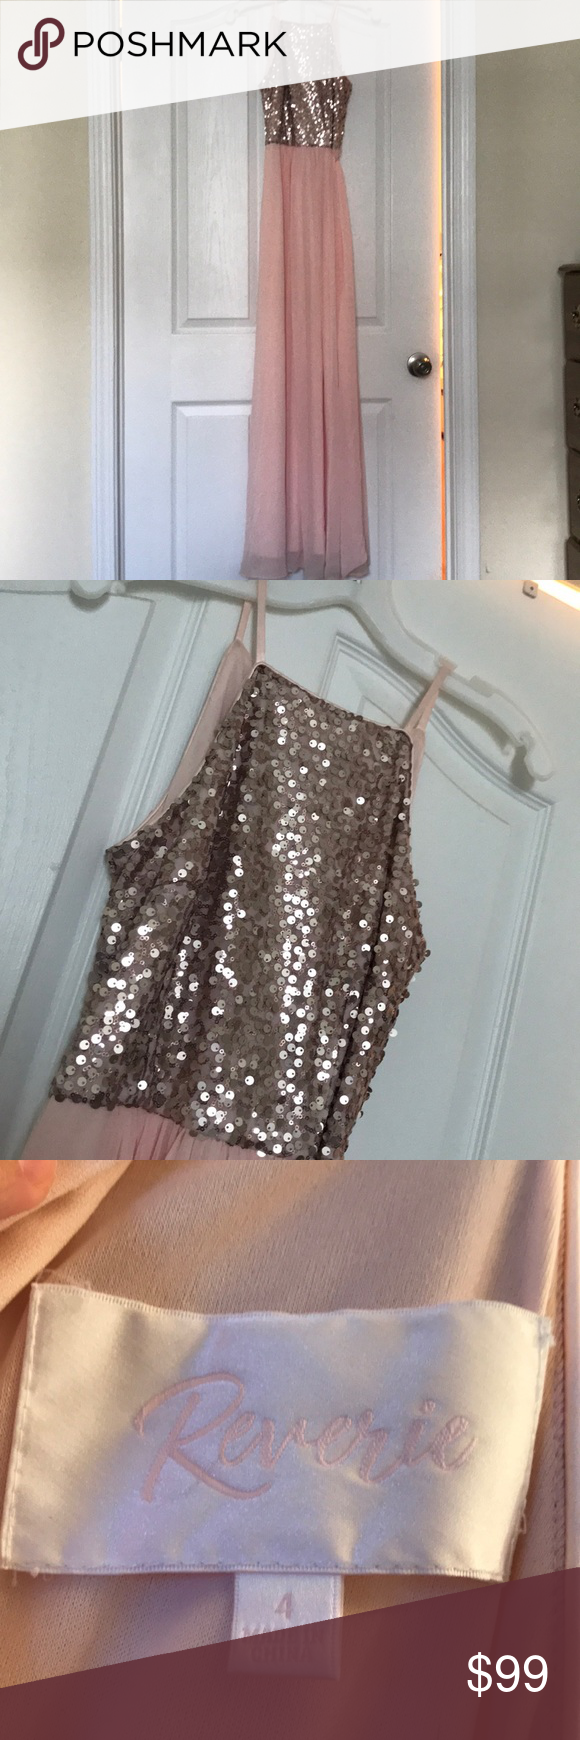 Sequin and chiffon highneck bridesmaid dress in my posh